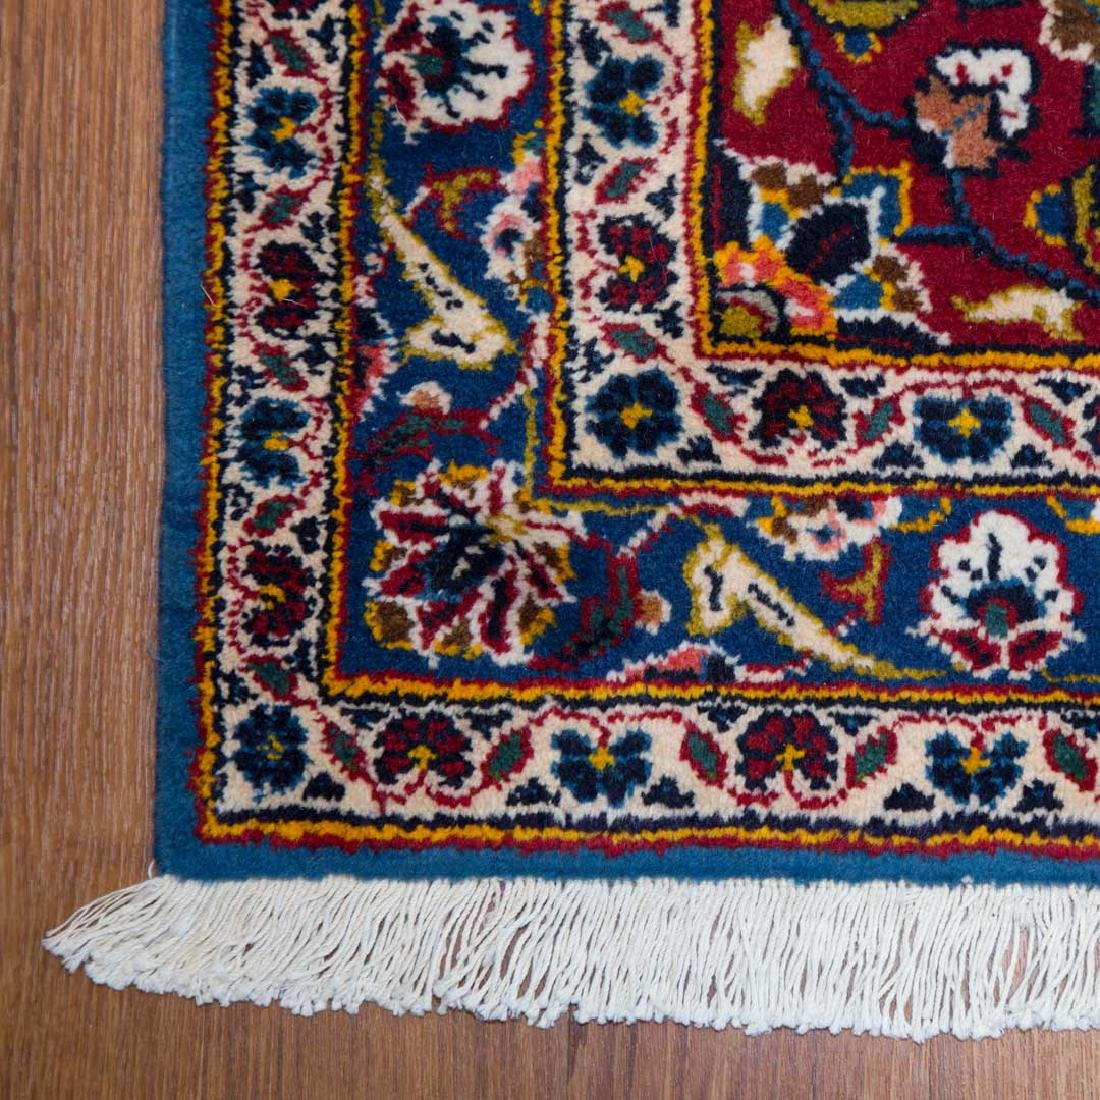 Persian Keshan carpet, approx. 9.9 x 13.3 - 2